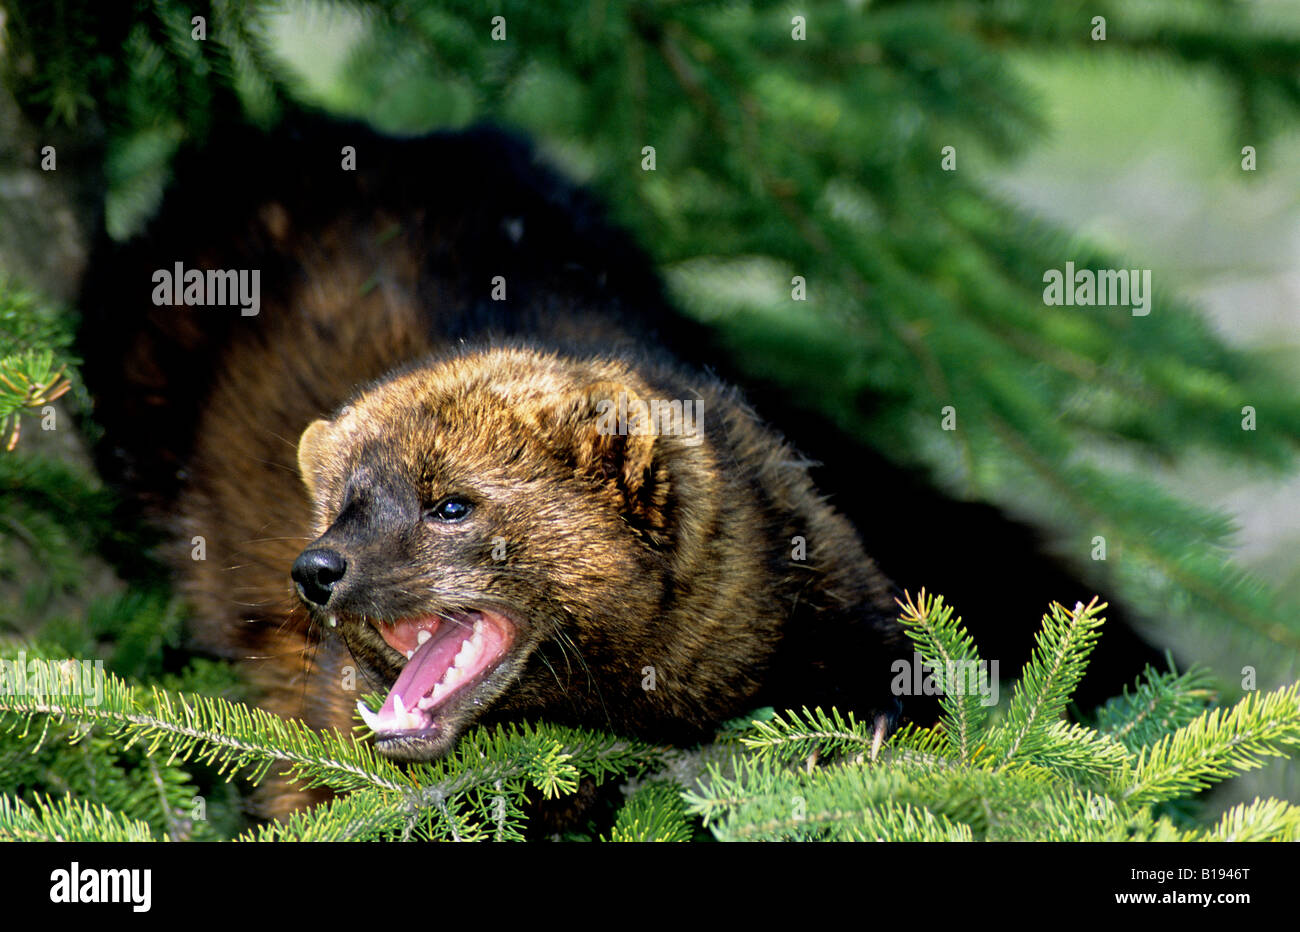 Adult fisher (Martes pennanti) in a spruce tree, Alberta, Canada. - Stock Image